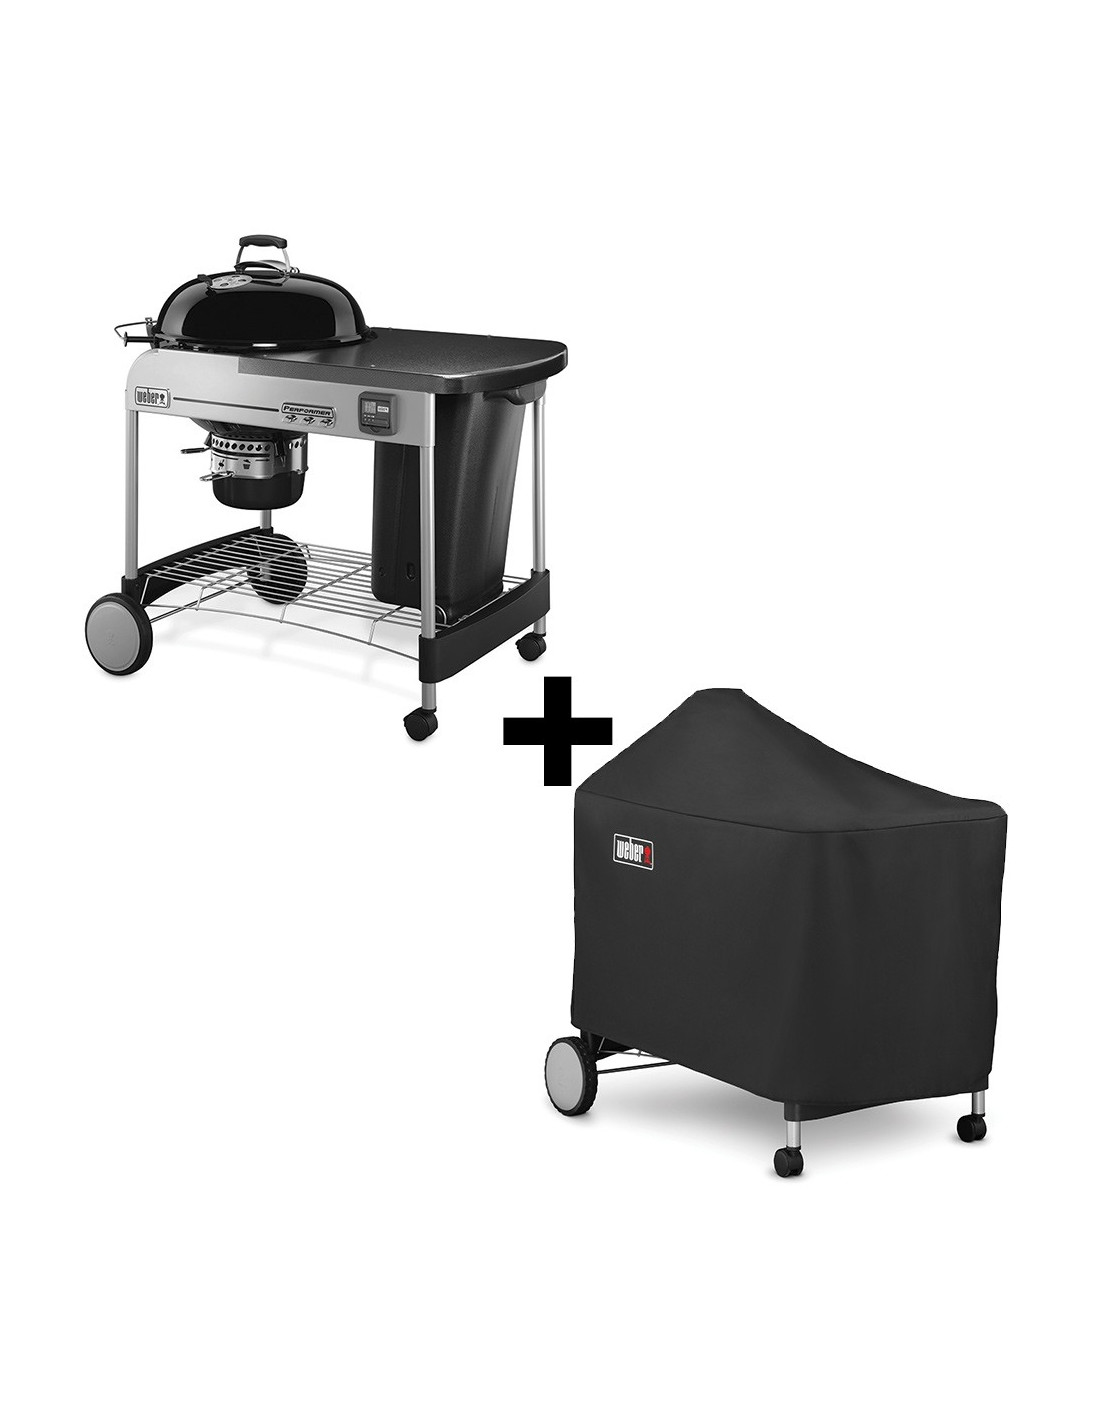 barbecue weber charbon performer premium 57cm gbs housse. Black Bedroom Furniture Sets. Home Design Ideas